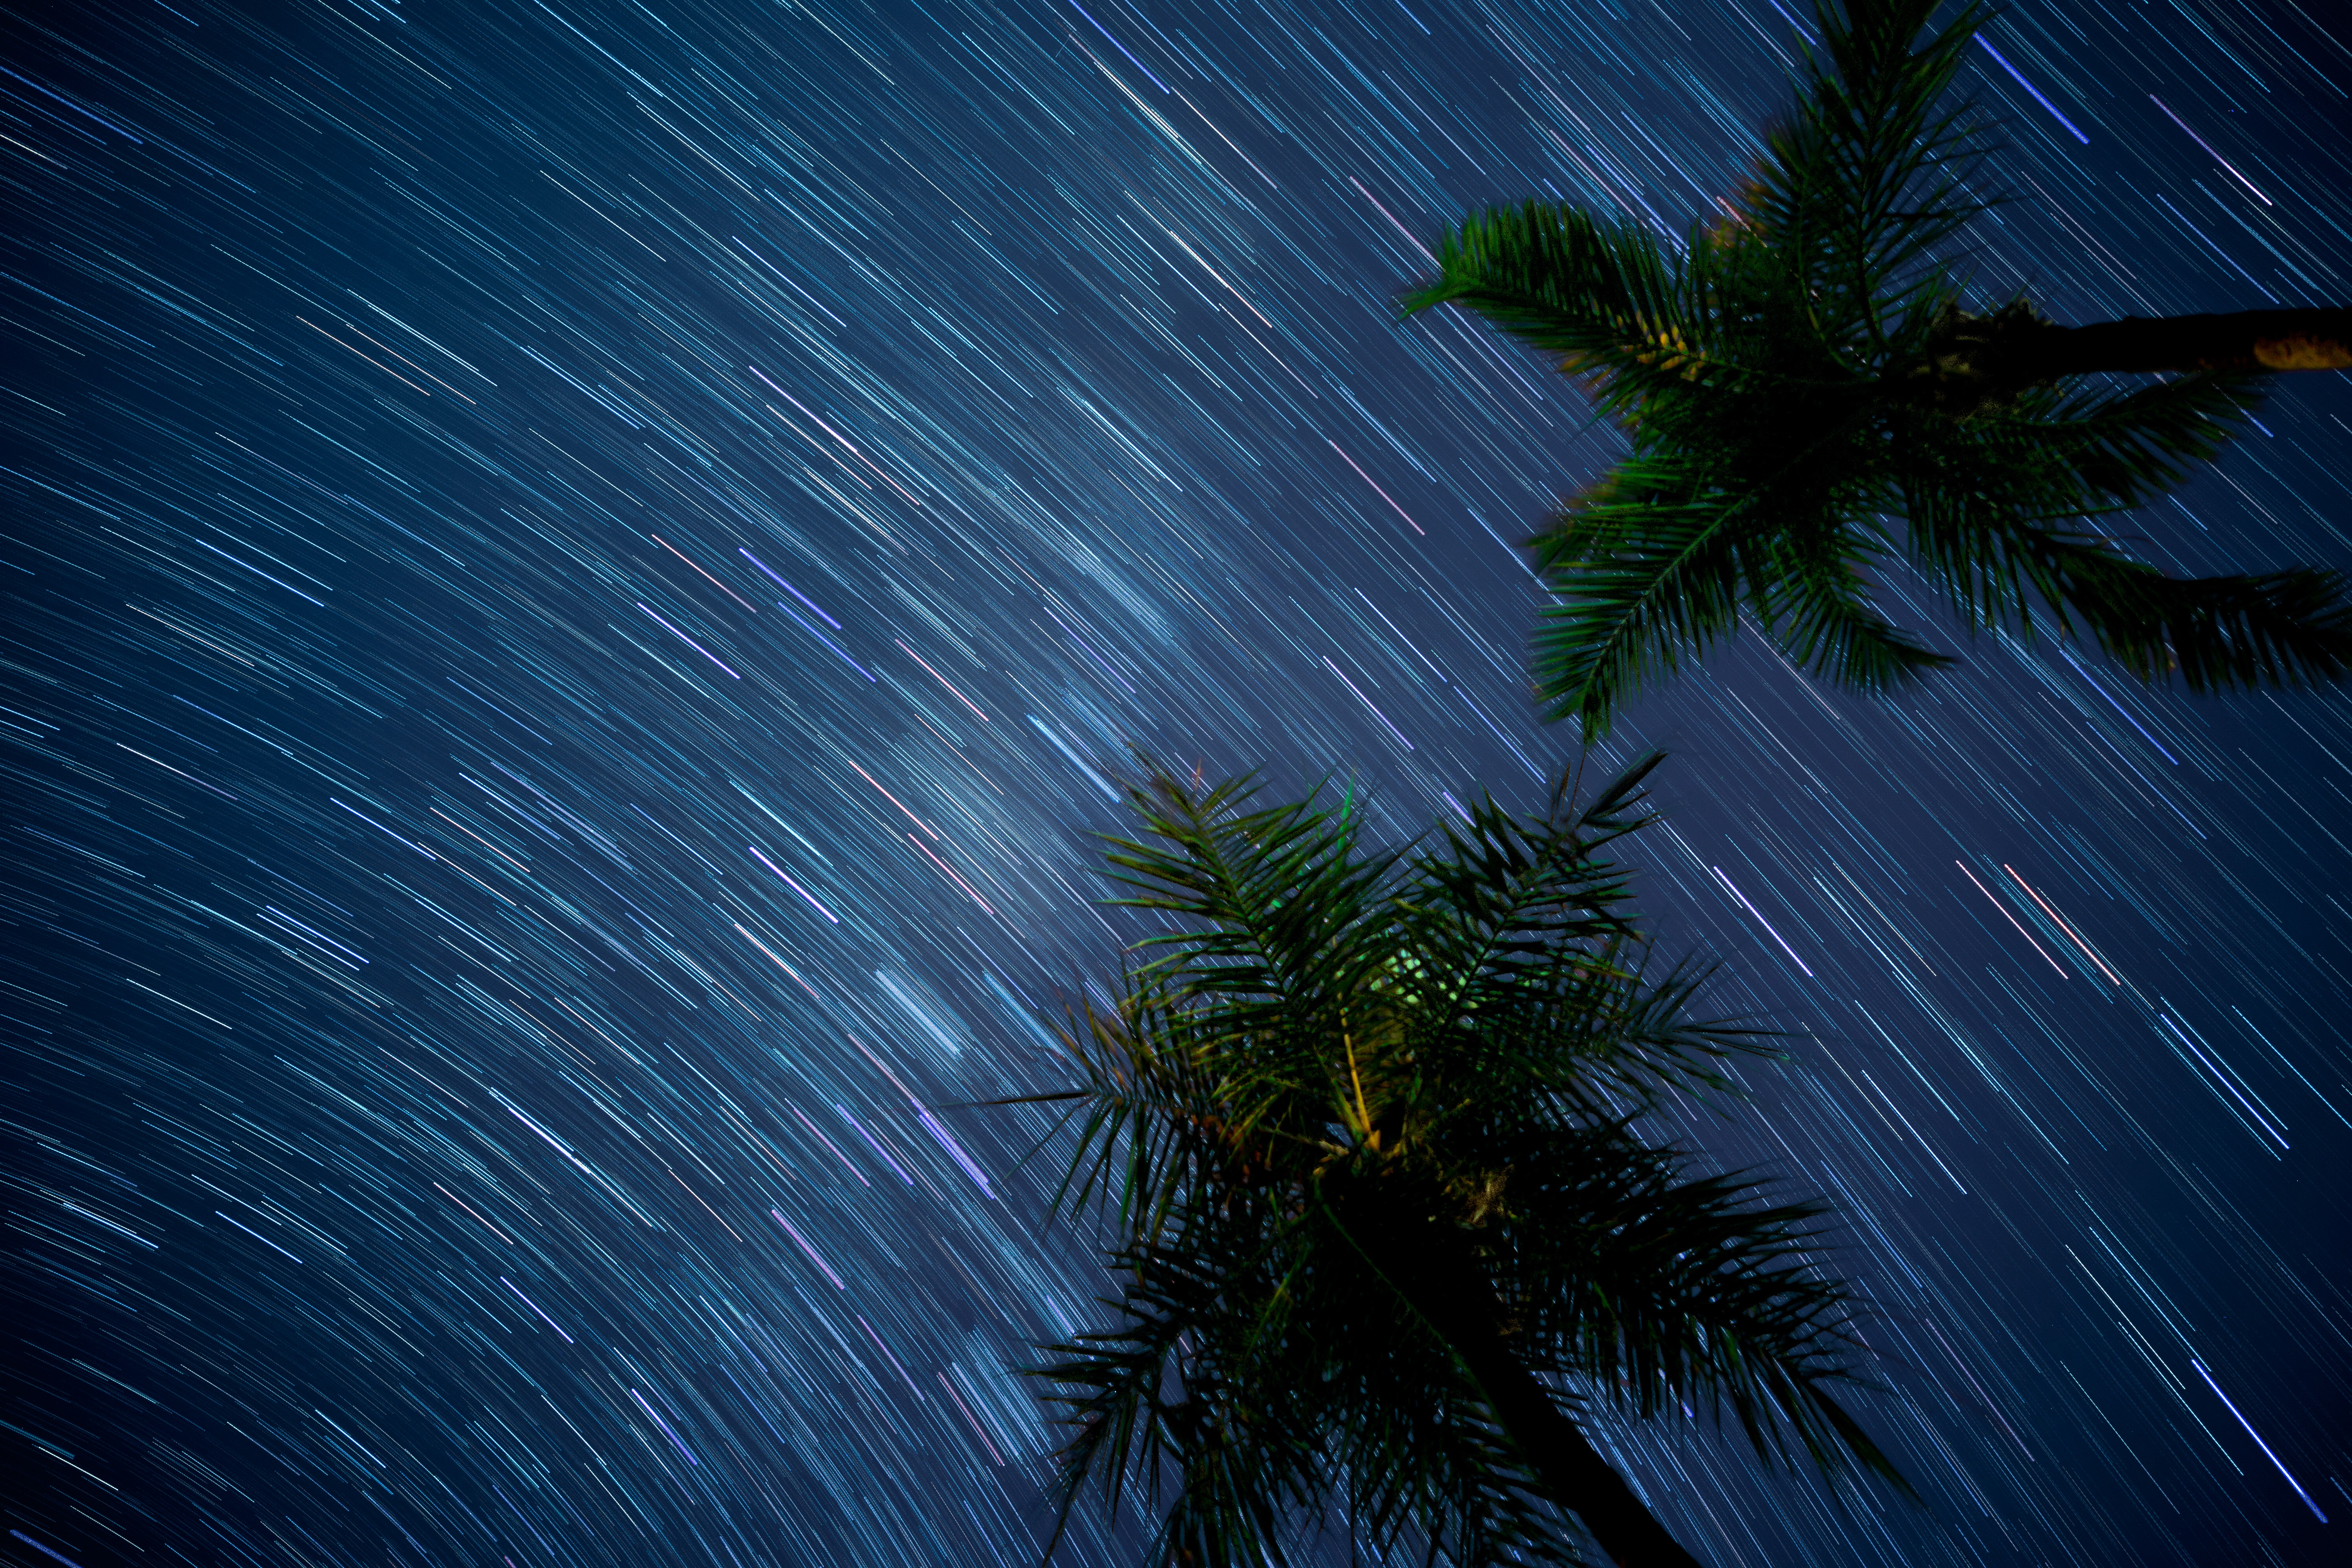 time-lapse photography of meteor shower